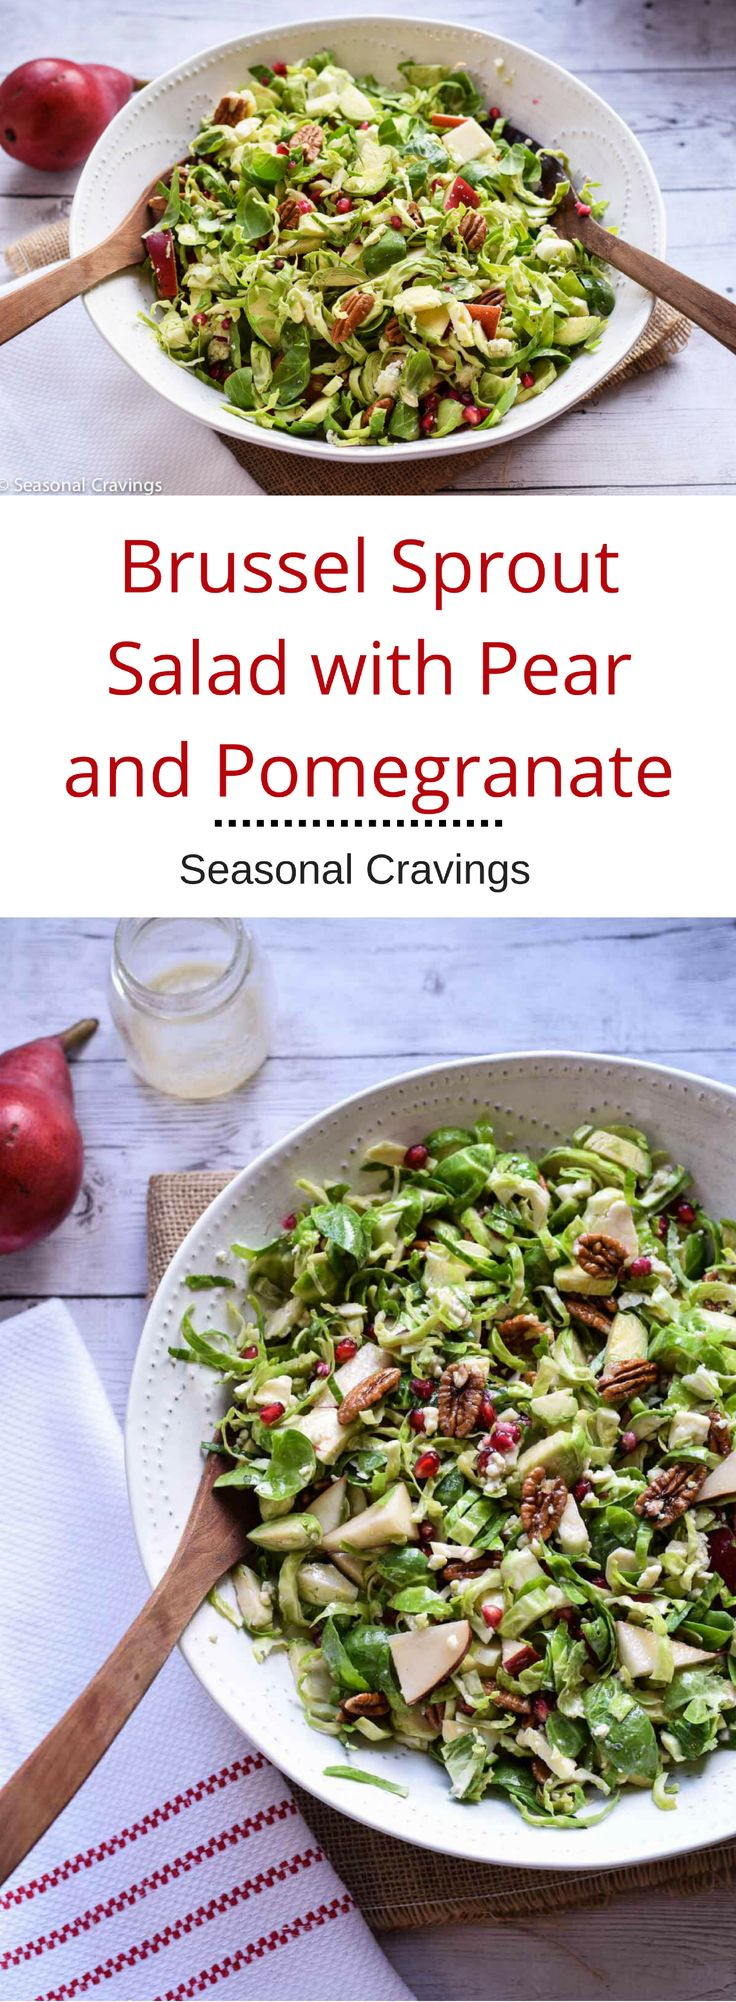 Brussel Sprout Salad with Pear and Pomegranate - Looking for a fun twist on a fall salad?  Try this Brussel Sprout Salad with Pear and Pomegranate.  It's full of healthy seasonal goodness and loaded with gorgeous color. #recipe #gluten free